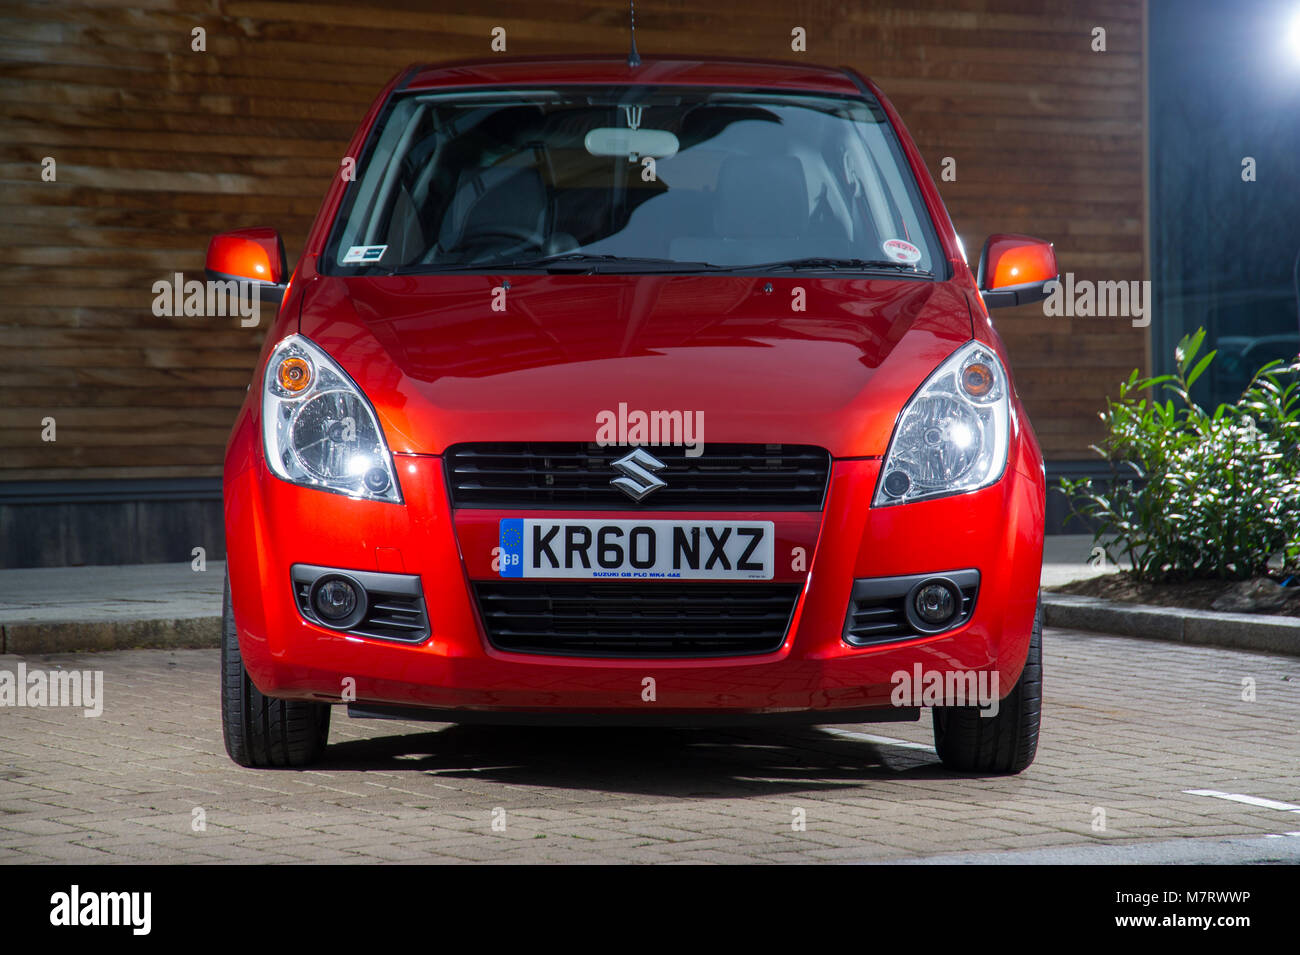 2011 Suzuki Splash city car Photo Stock